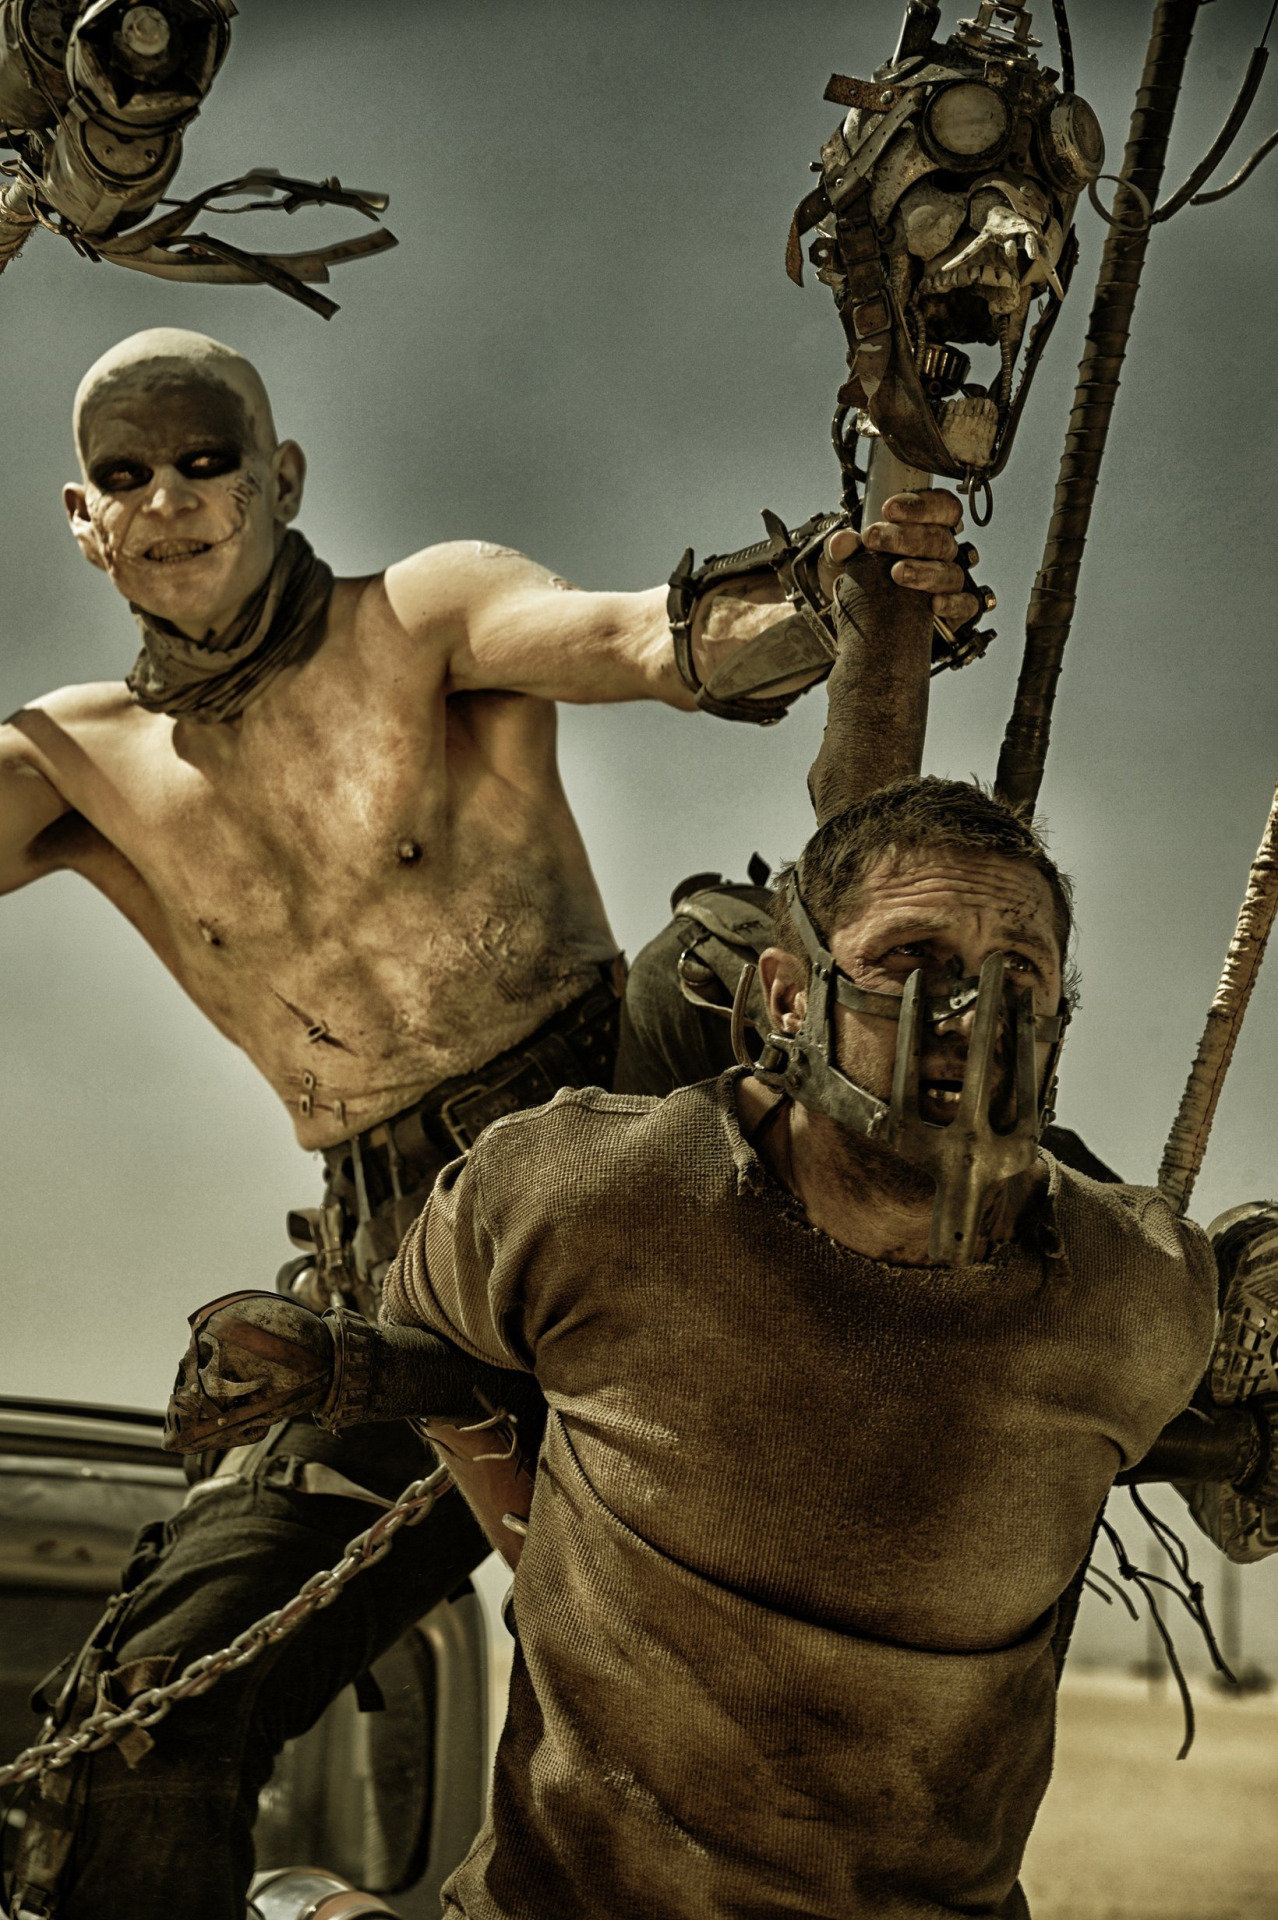 Slit | The Mad Max Wiki | FANDOM powered by Wikia